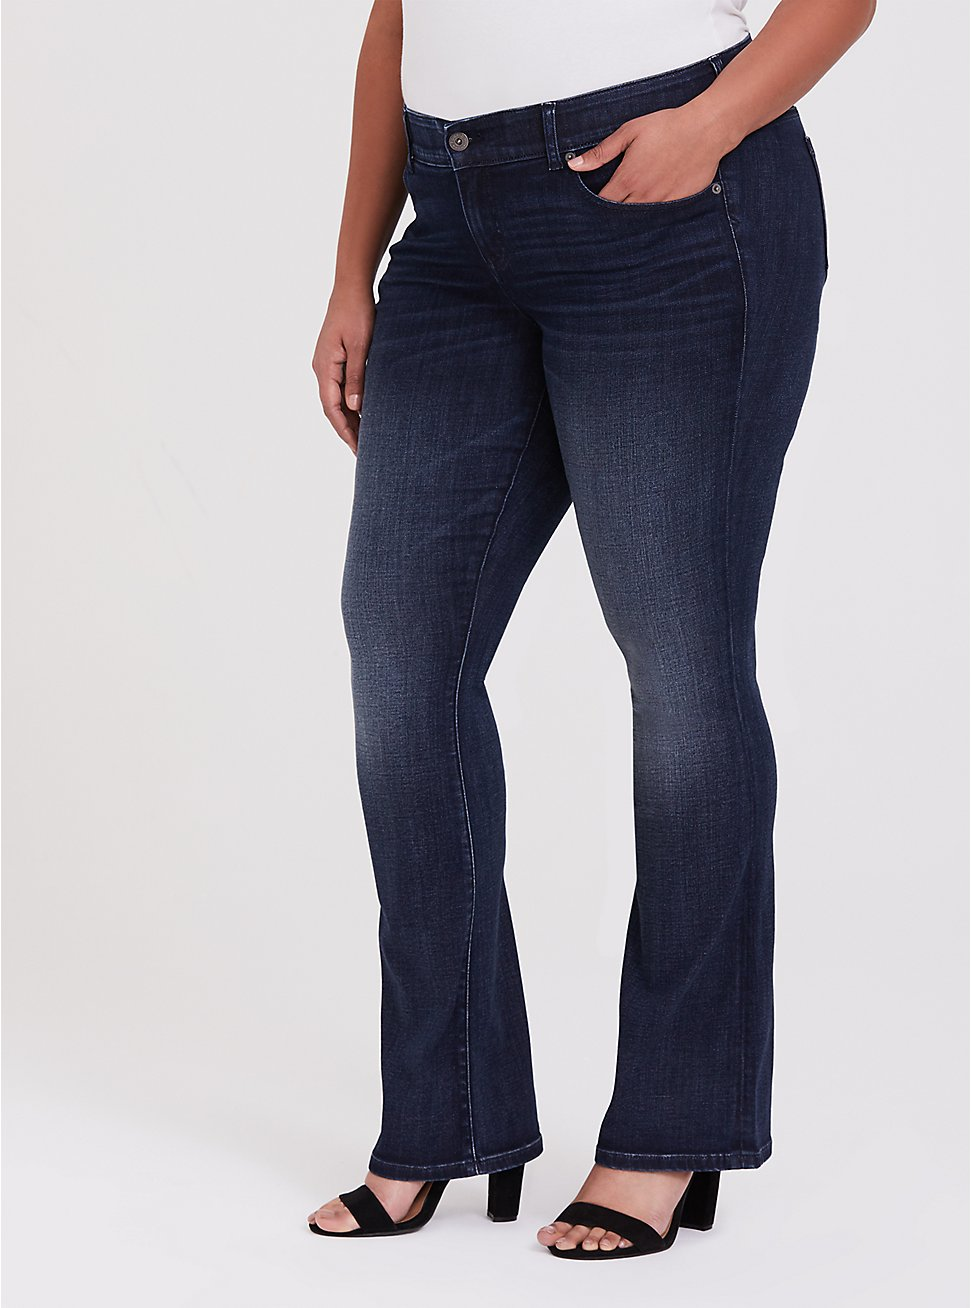 Slim Boot Jean - Super Soft Dark Wash, TWILIGHT, hi-res